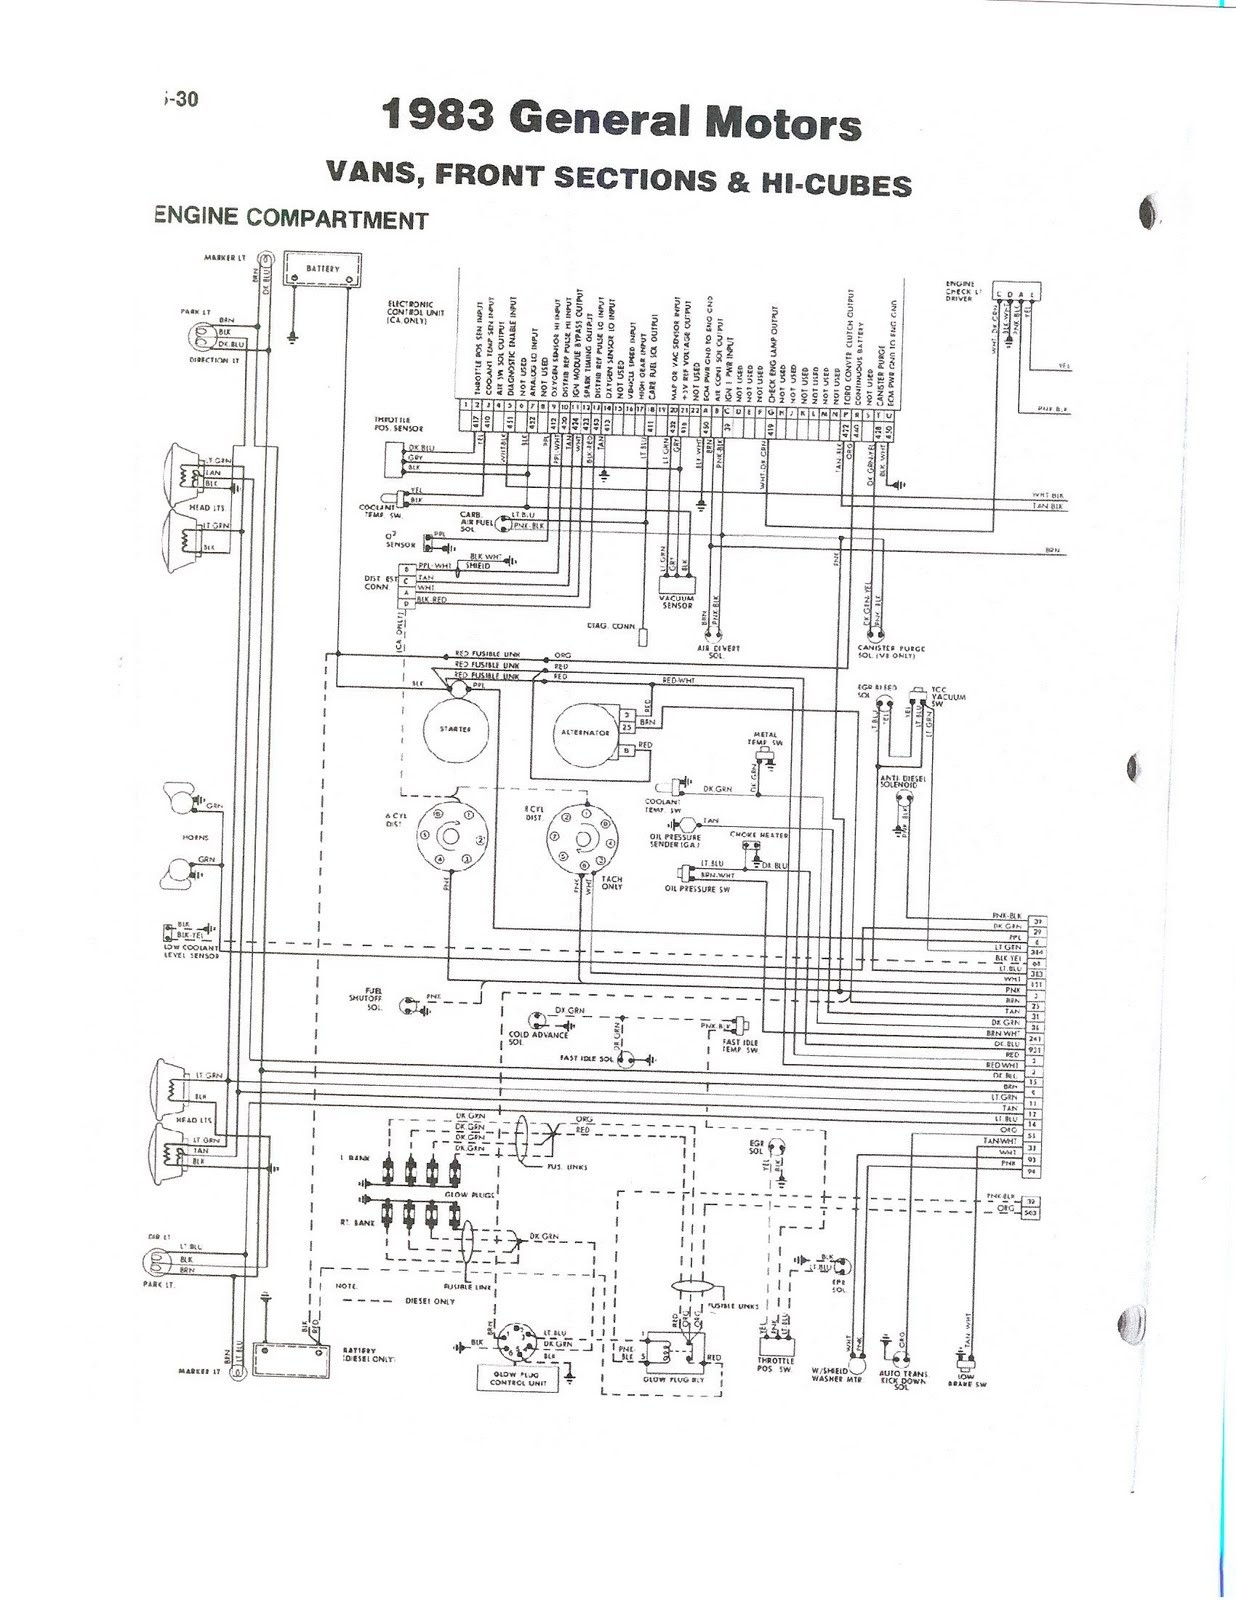 1983 Fleetwood Rv Wiring Diagram Exclusive Circuit General Engine Diagrams 1990 Motorhome Schematics U2022 Rh Orwellvets Co 1995 Southwind 50 Amp